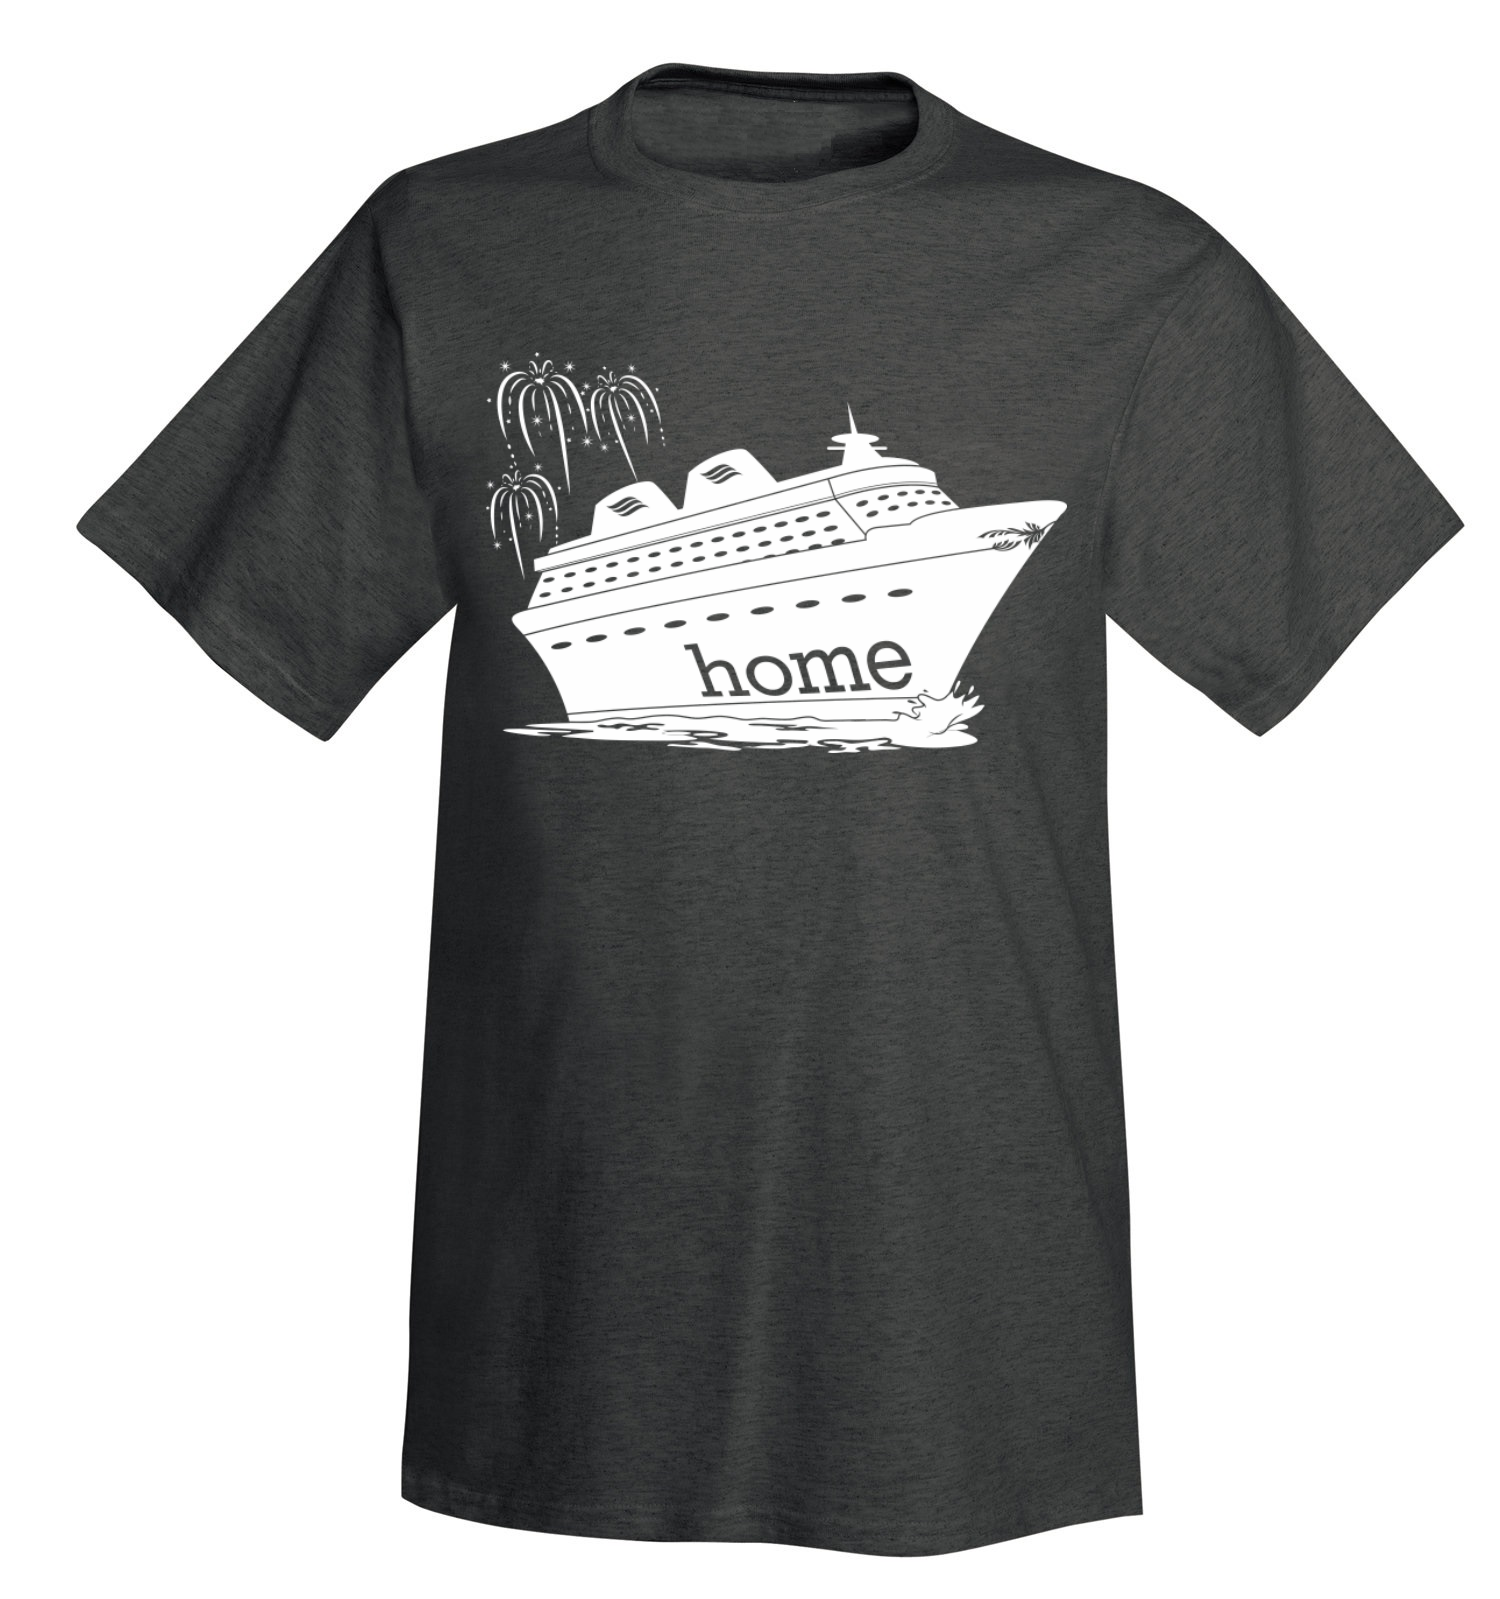 6fe3a6cf4e7 ... That Magical Cruise Is My Home Men s T-Shirt - With Personalization  Option ...